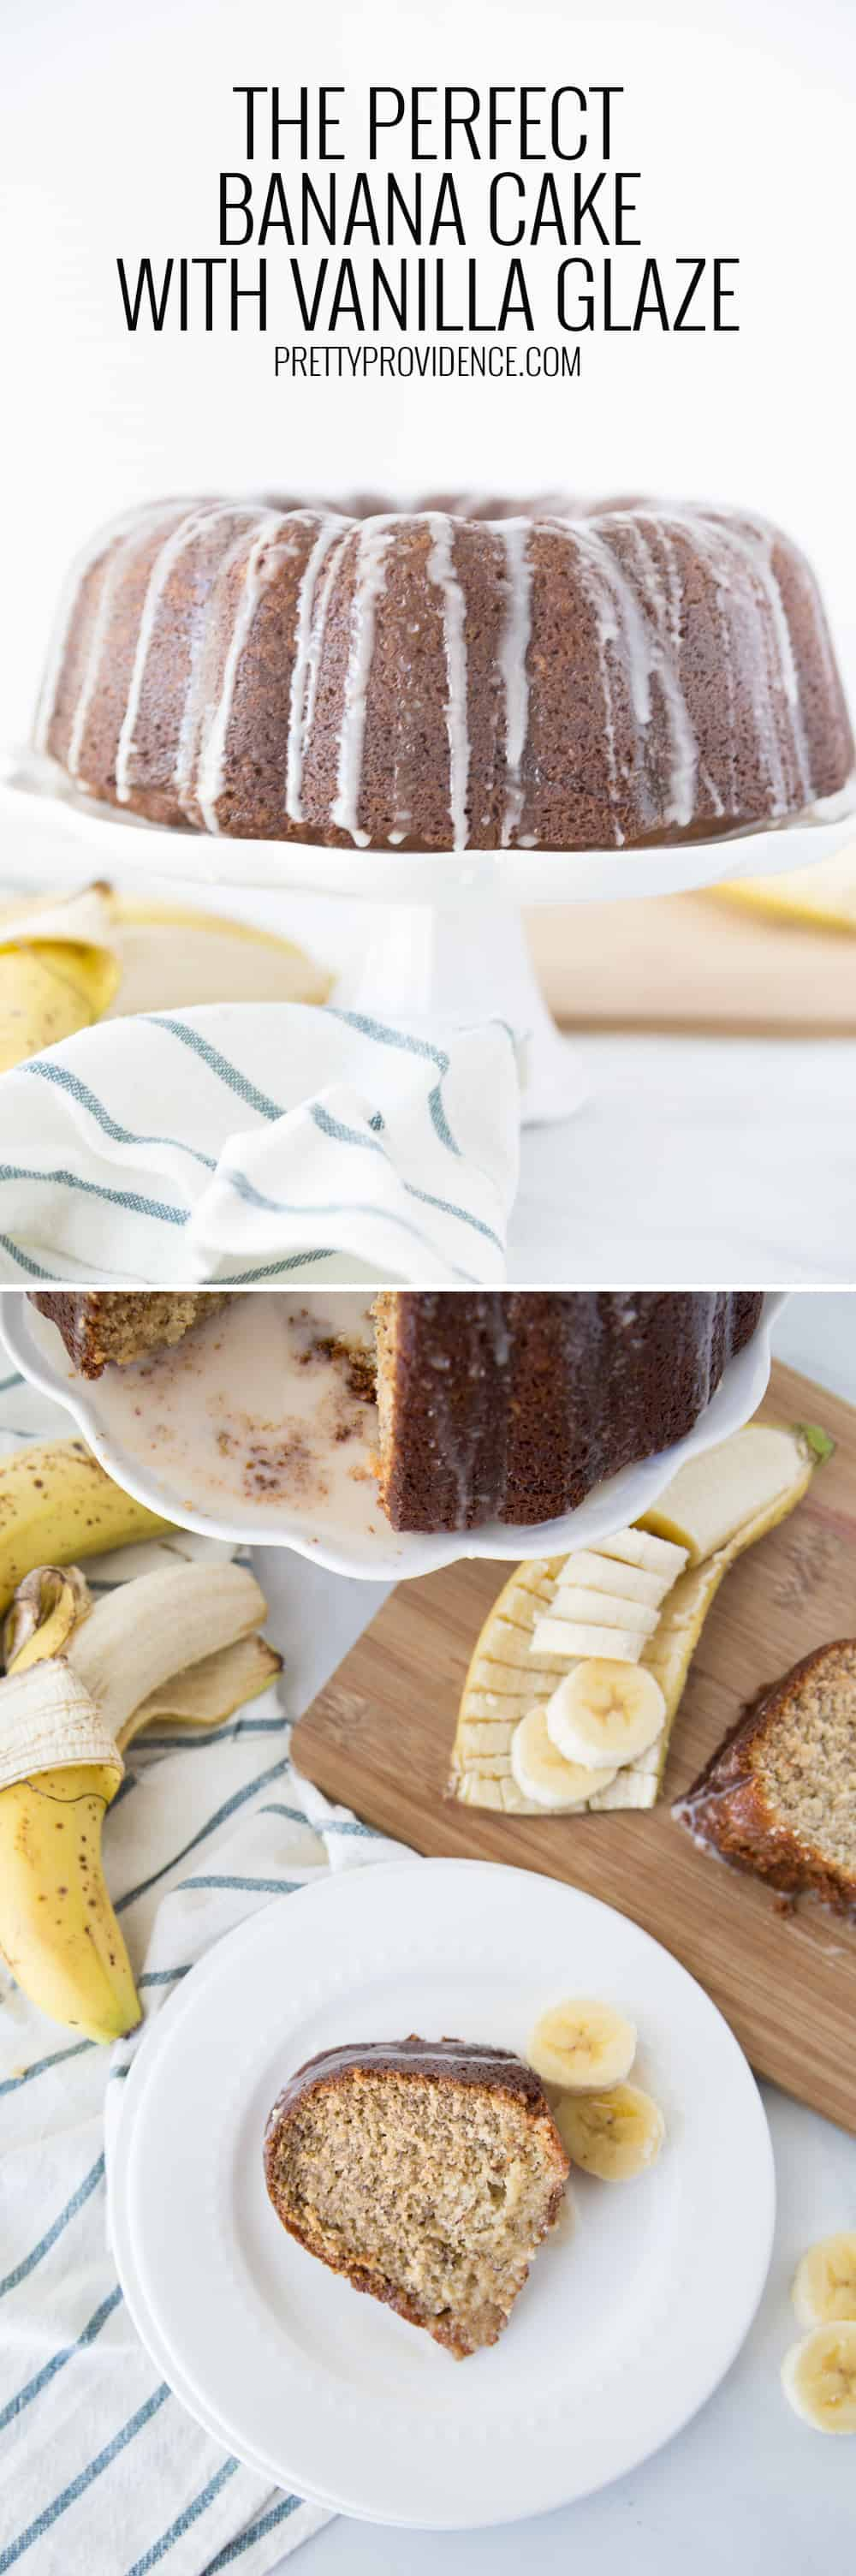 If you've ever wondered how to make banana cake at home, this easy banana cake recipe with vanilla glaze is perfection! It's made with sour cream and you will not find a more moist or delicious cake ever! #bananacake #bananacakerecipe #easybananacake #easybananacake #bananacakewithsourcream #moistbananacake